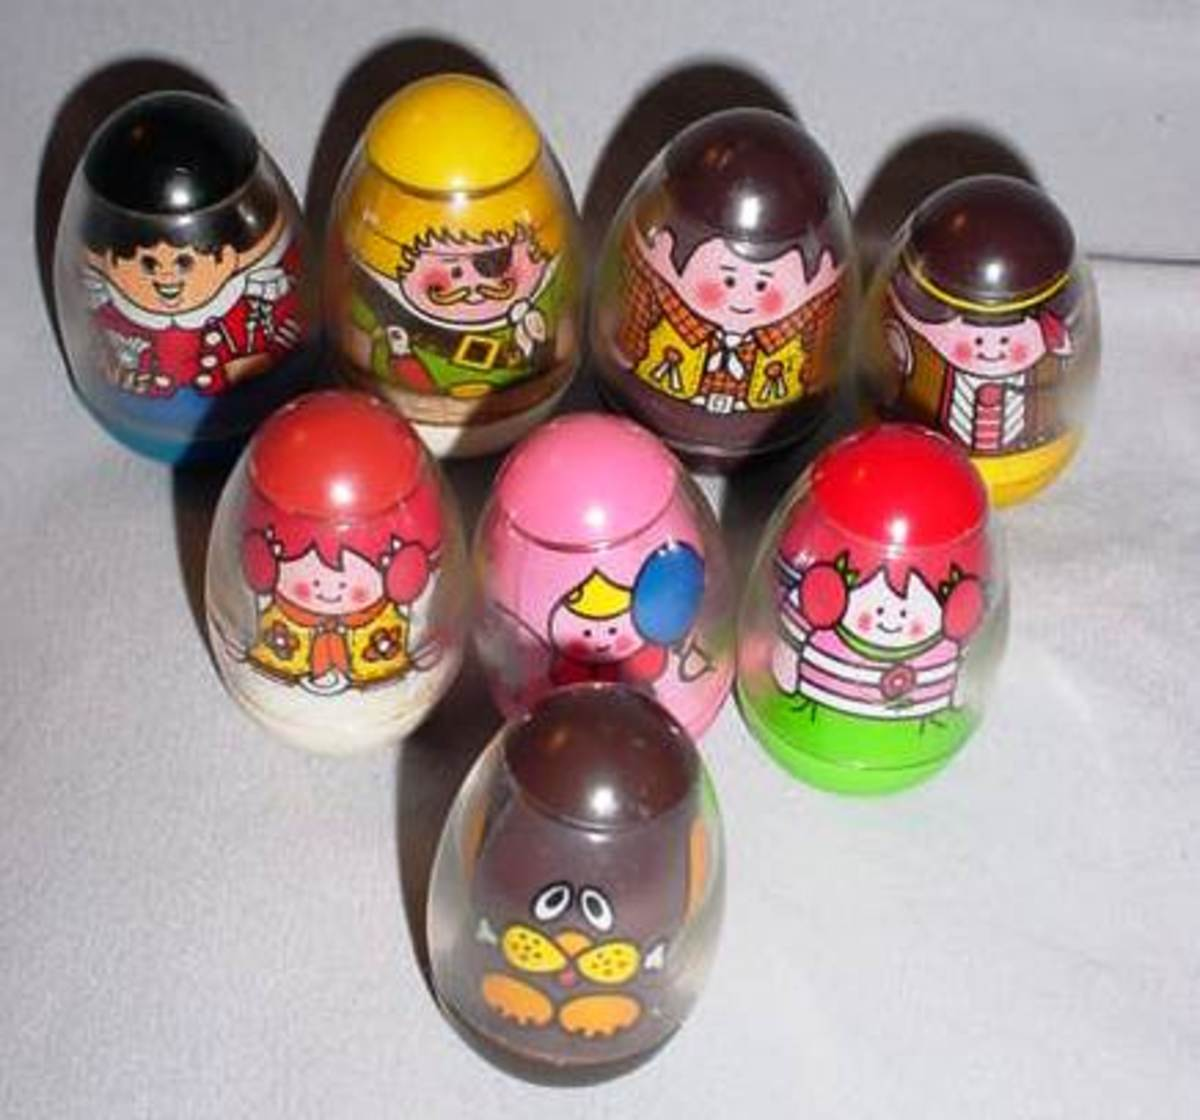 Weebles toys